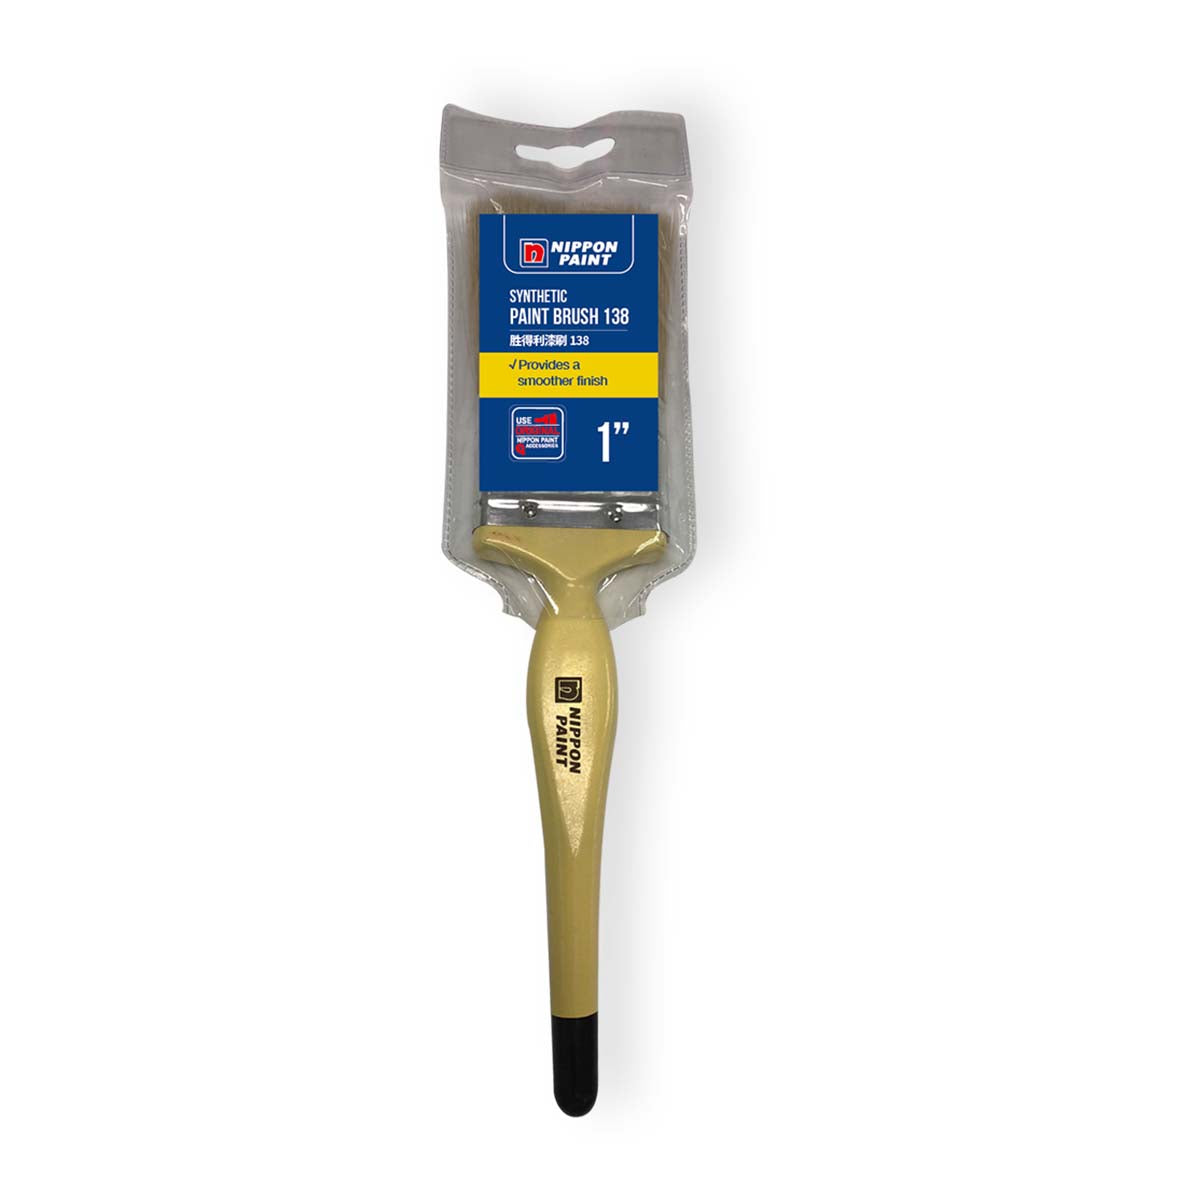 Nippon Synthetic Paint Brush (various sizes)